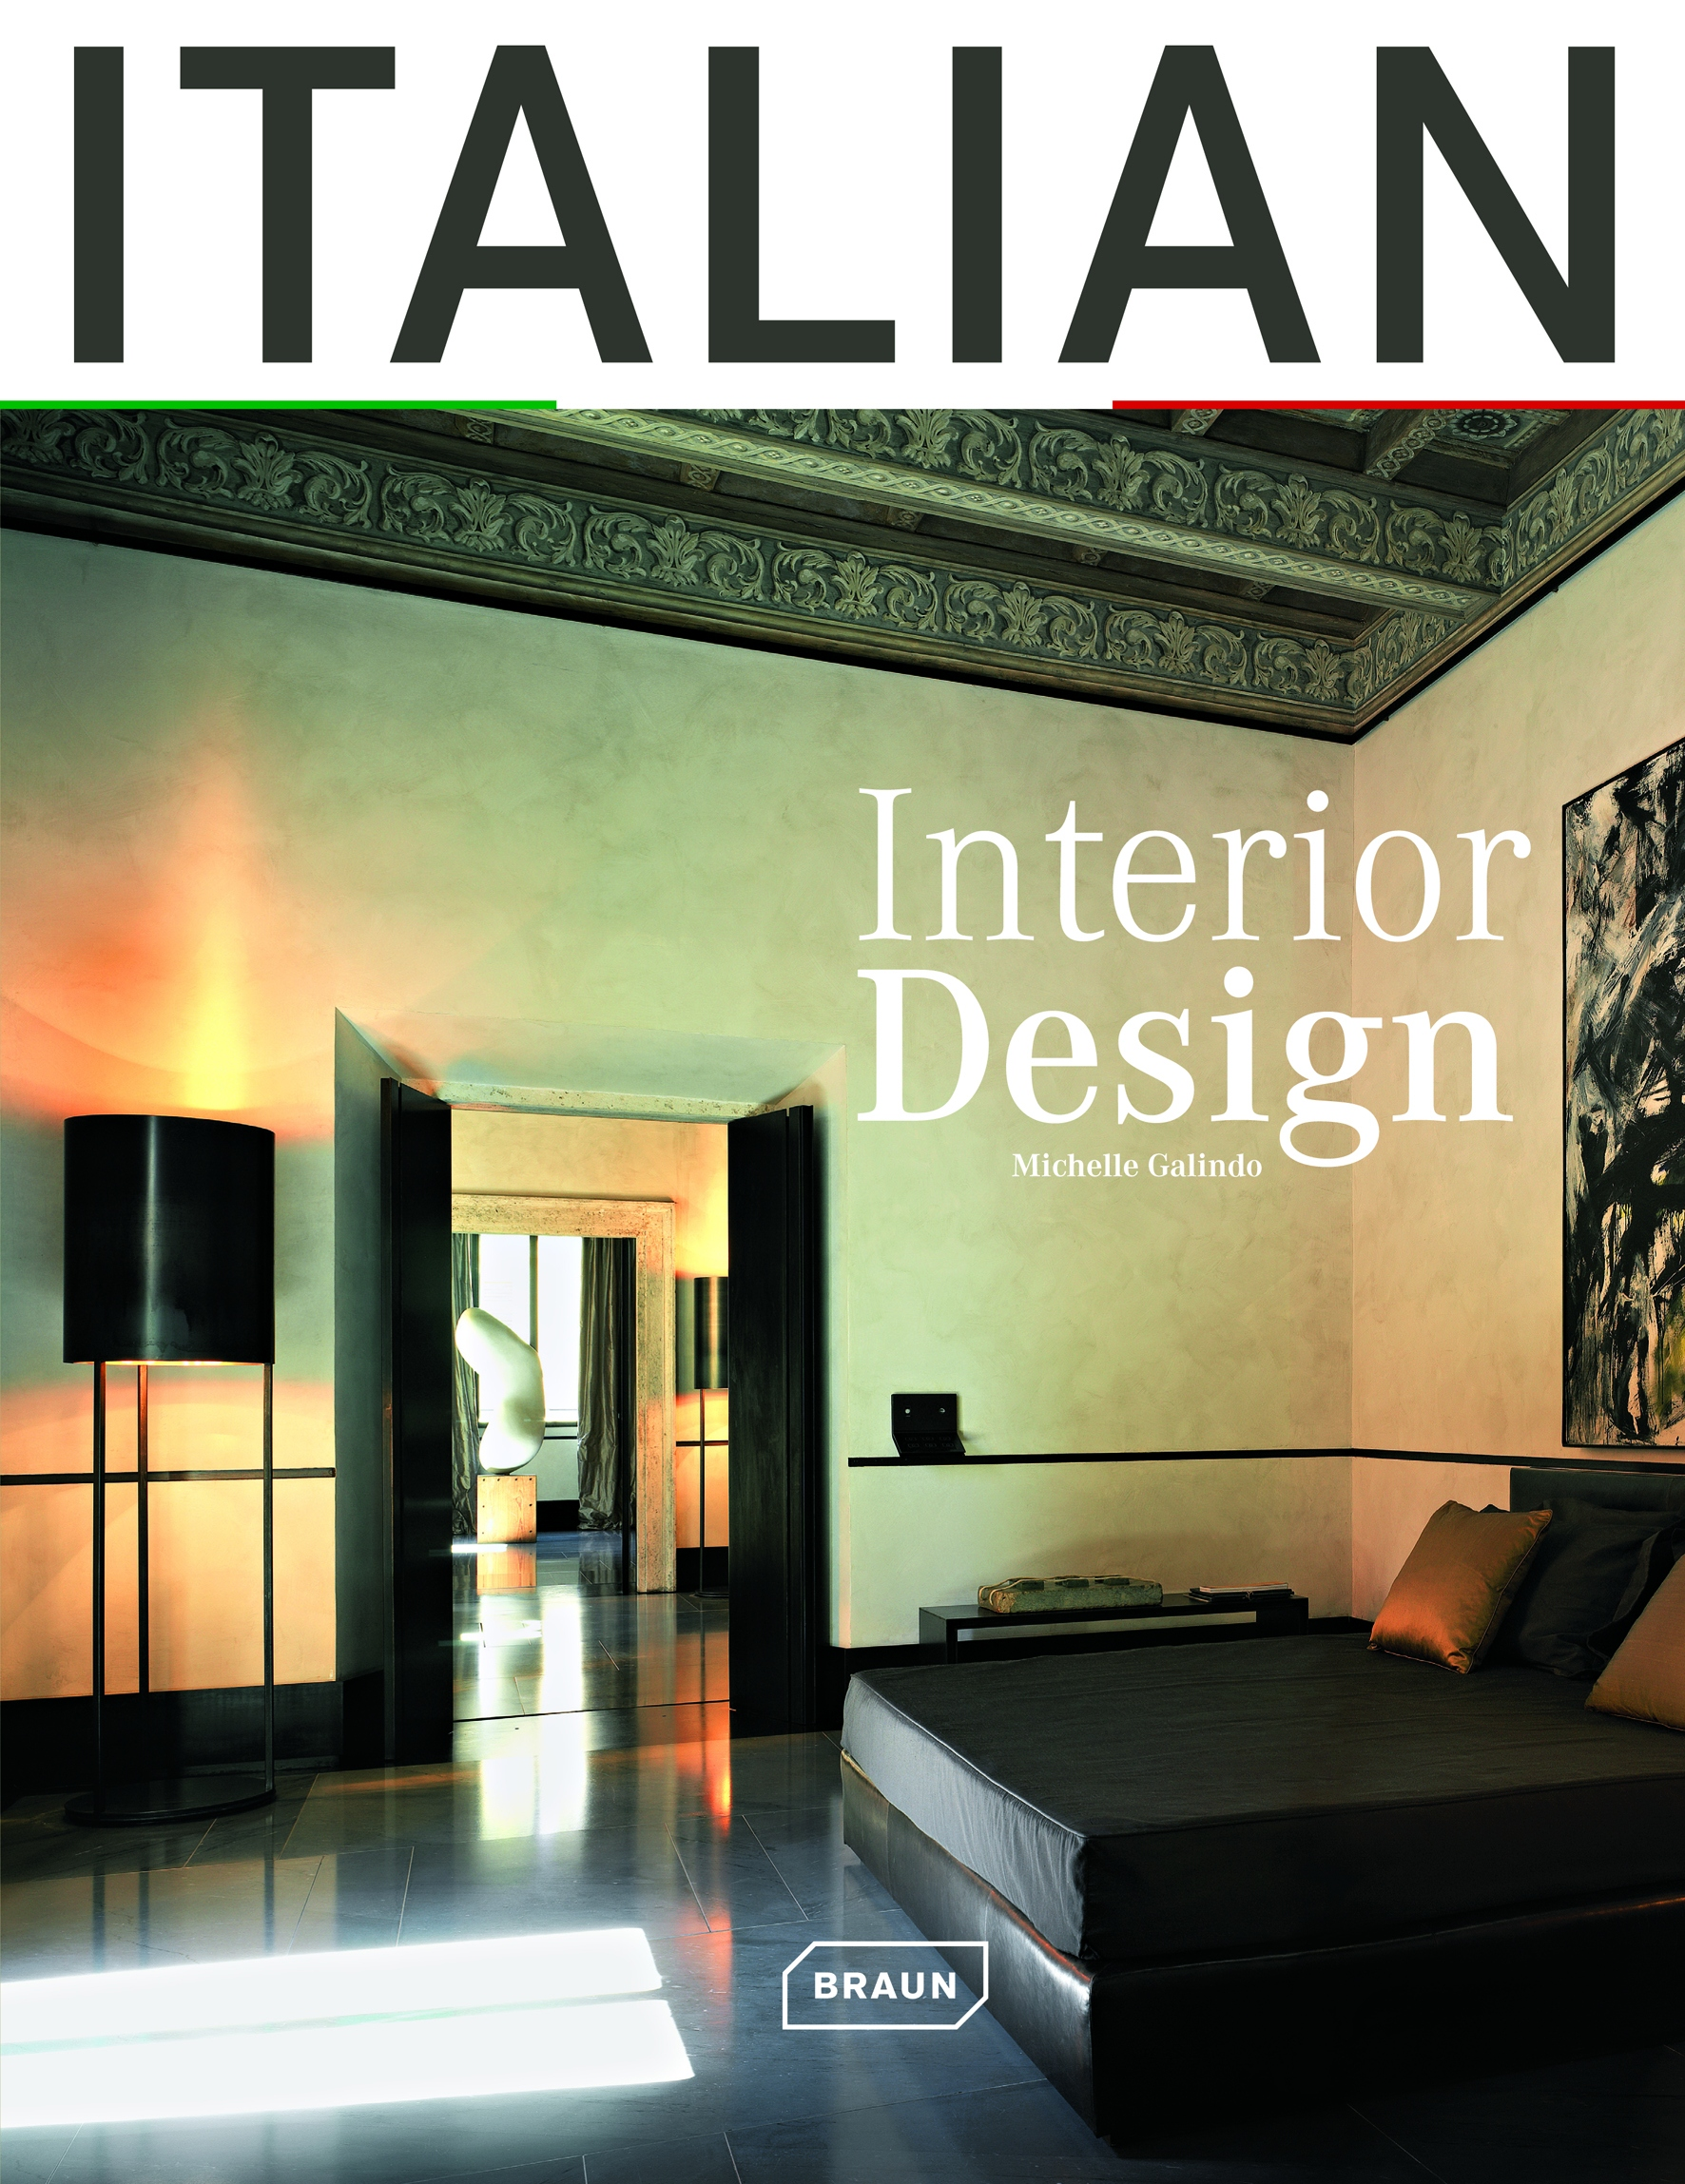 Italian interior design interior design braun publishing for Italian interior design